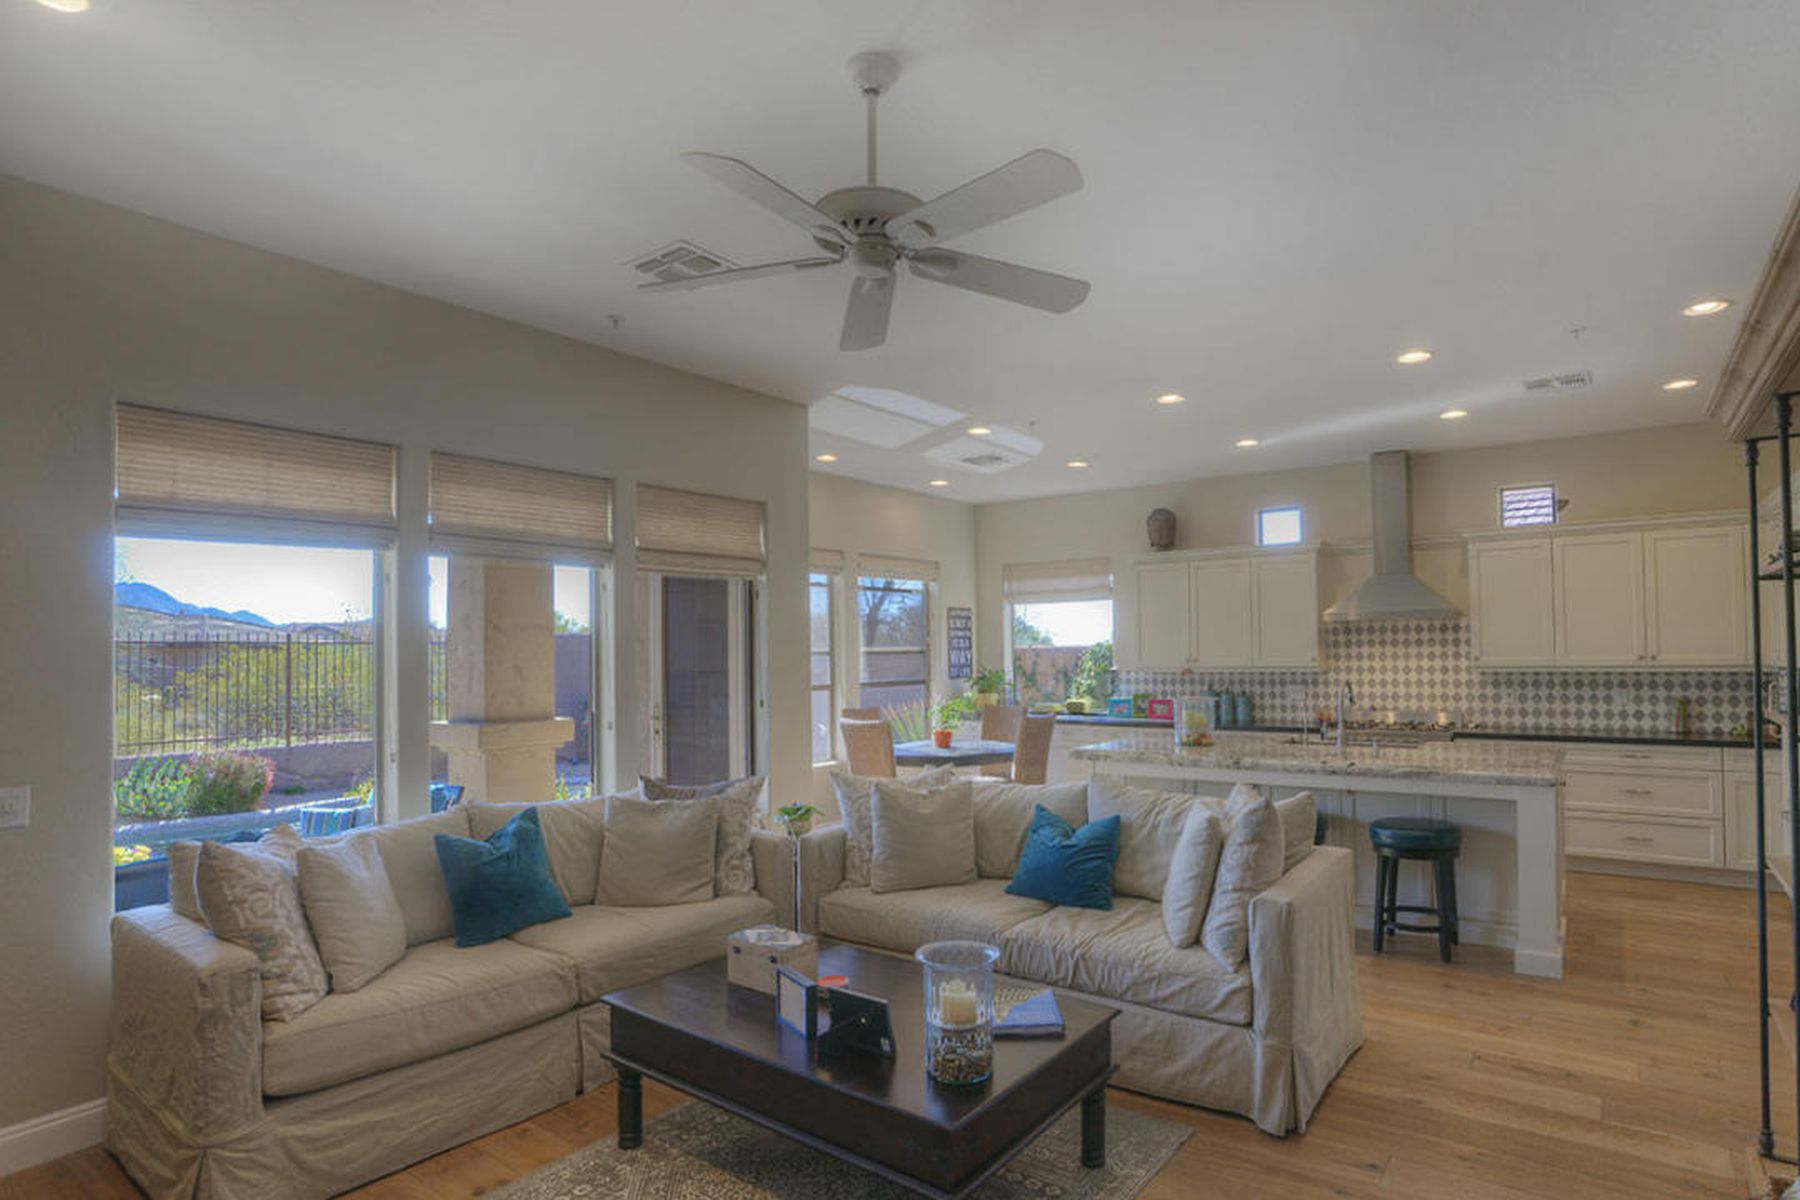 Single Family Home for Sale at Extraordinary Remodel DC Ranch Home 9097 E Mohawk LN, Scottsdale, Arizona, 85255 United States